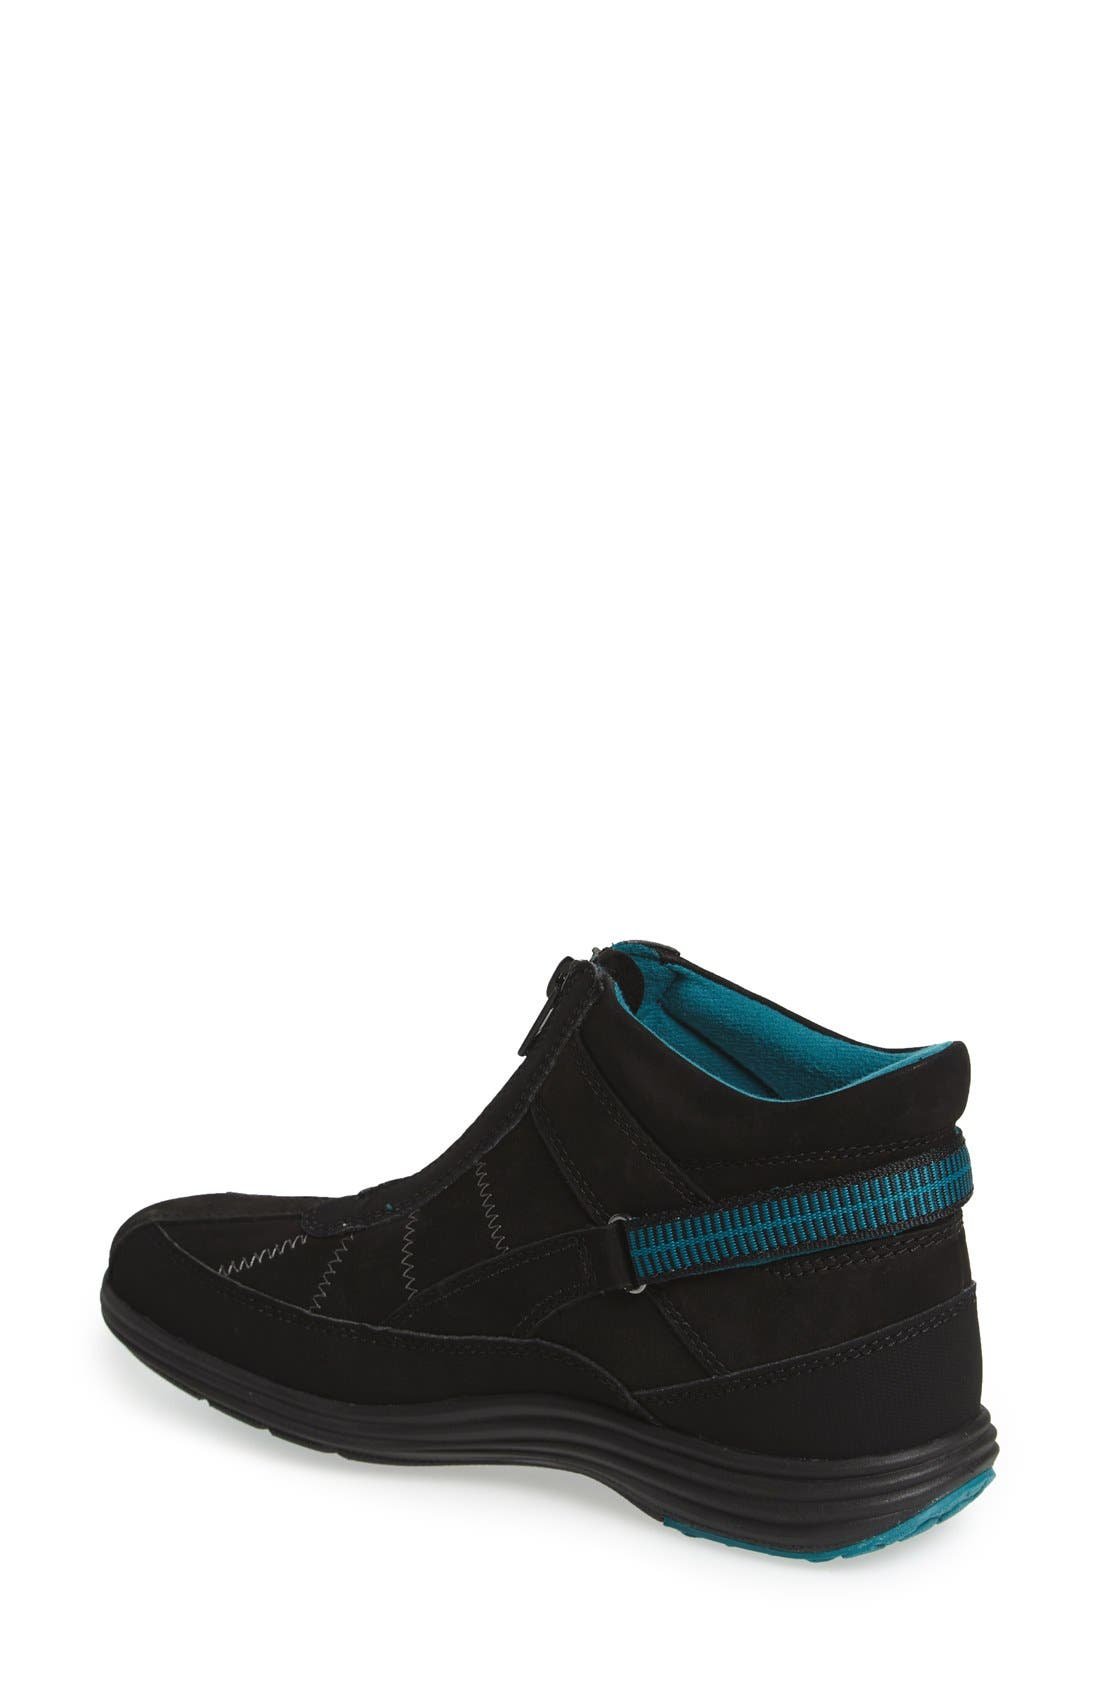 'Beverly' Waterproof Midi Sneaker,                             Alternate thumbnail 2, color,                             Black Leather